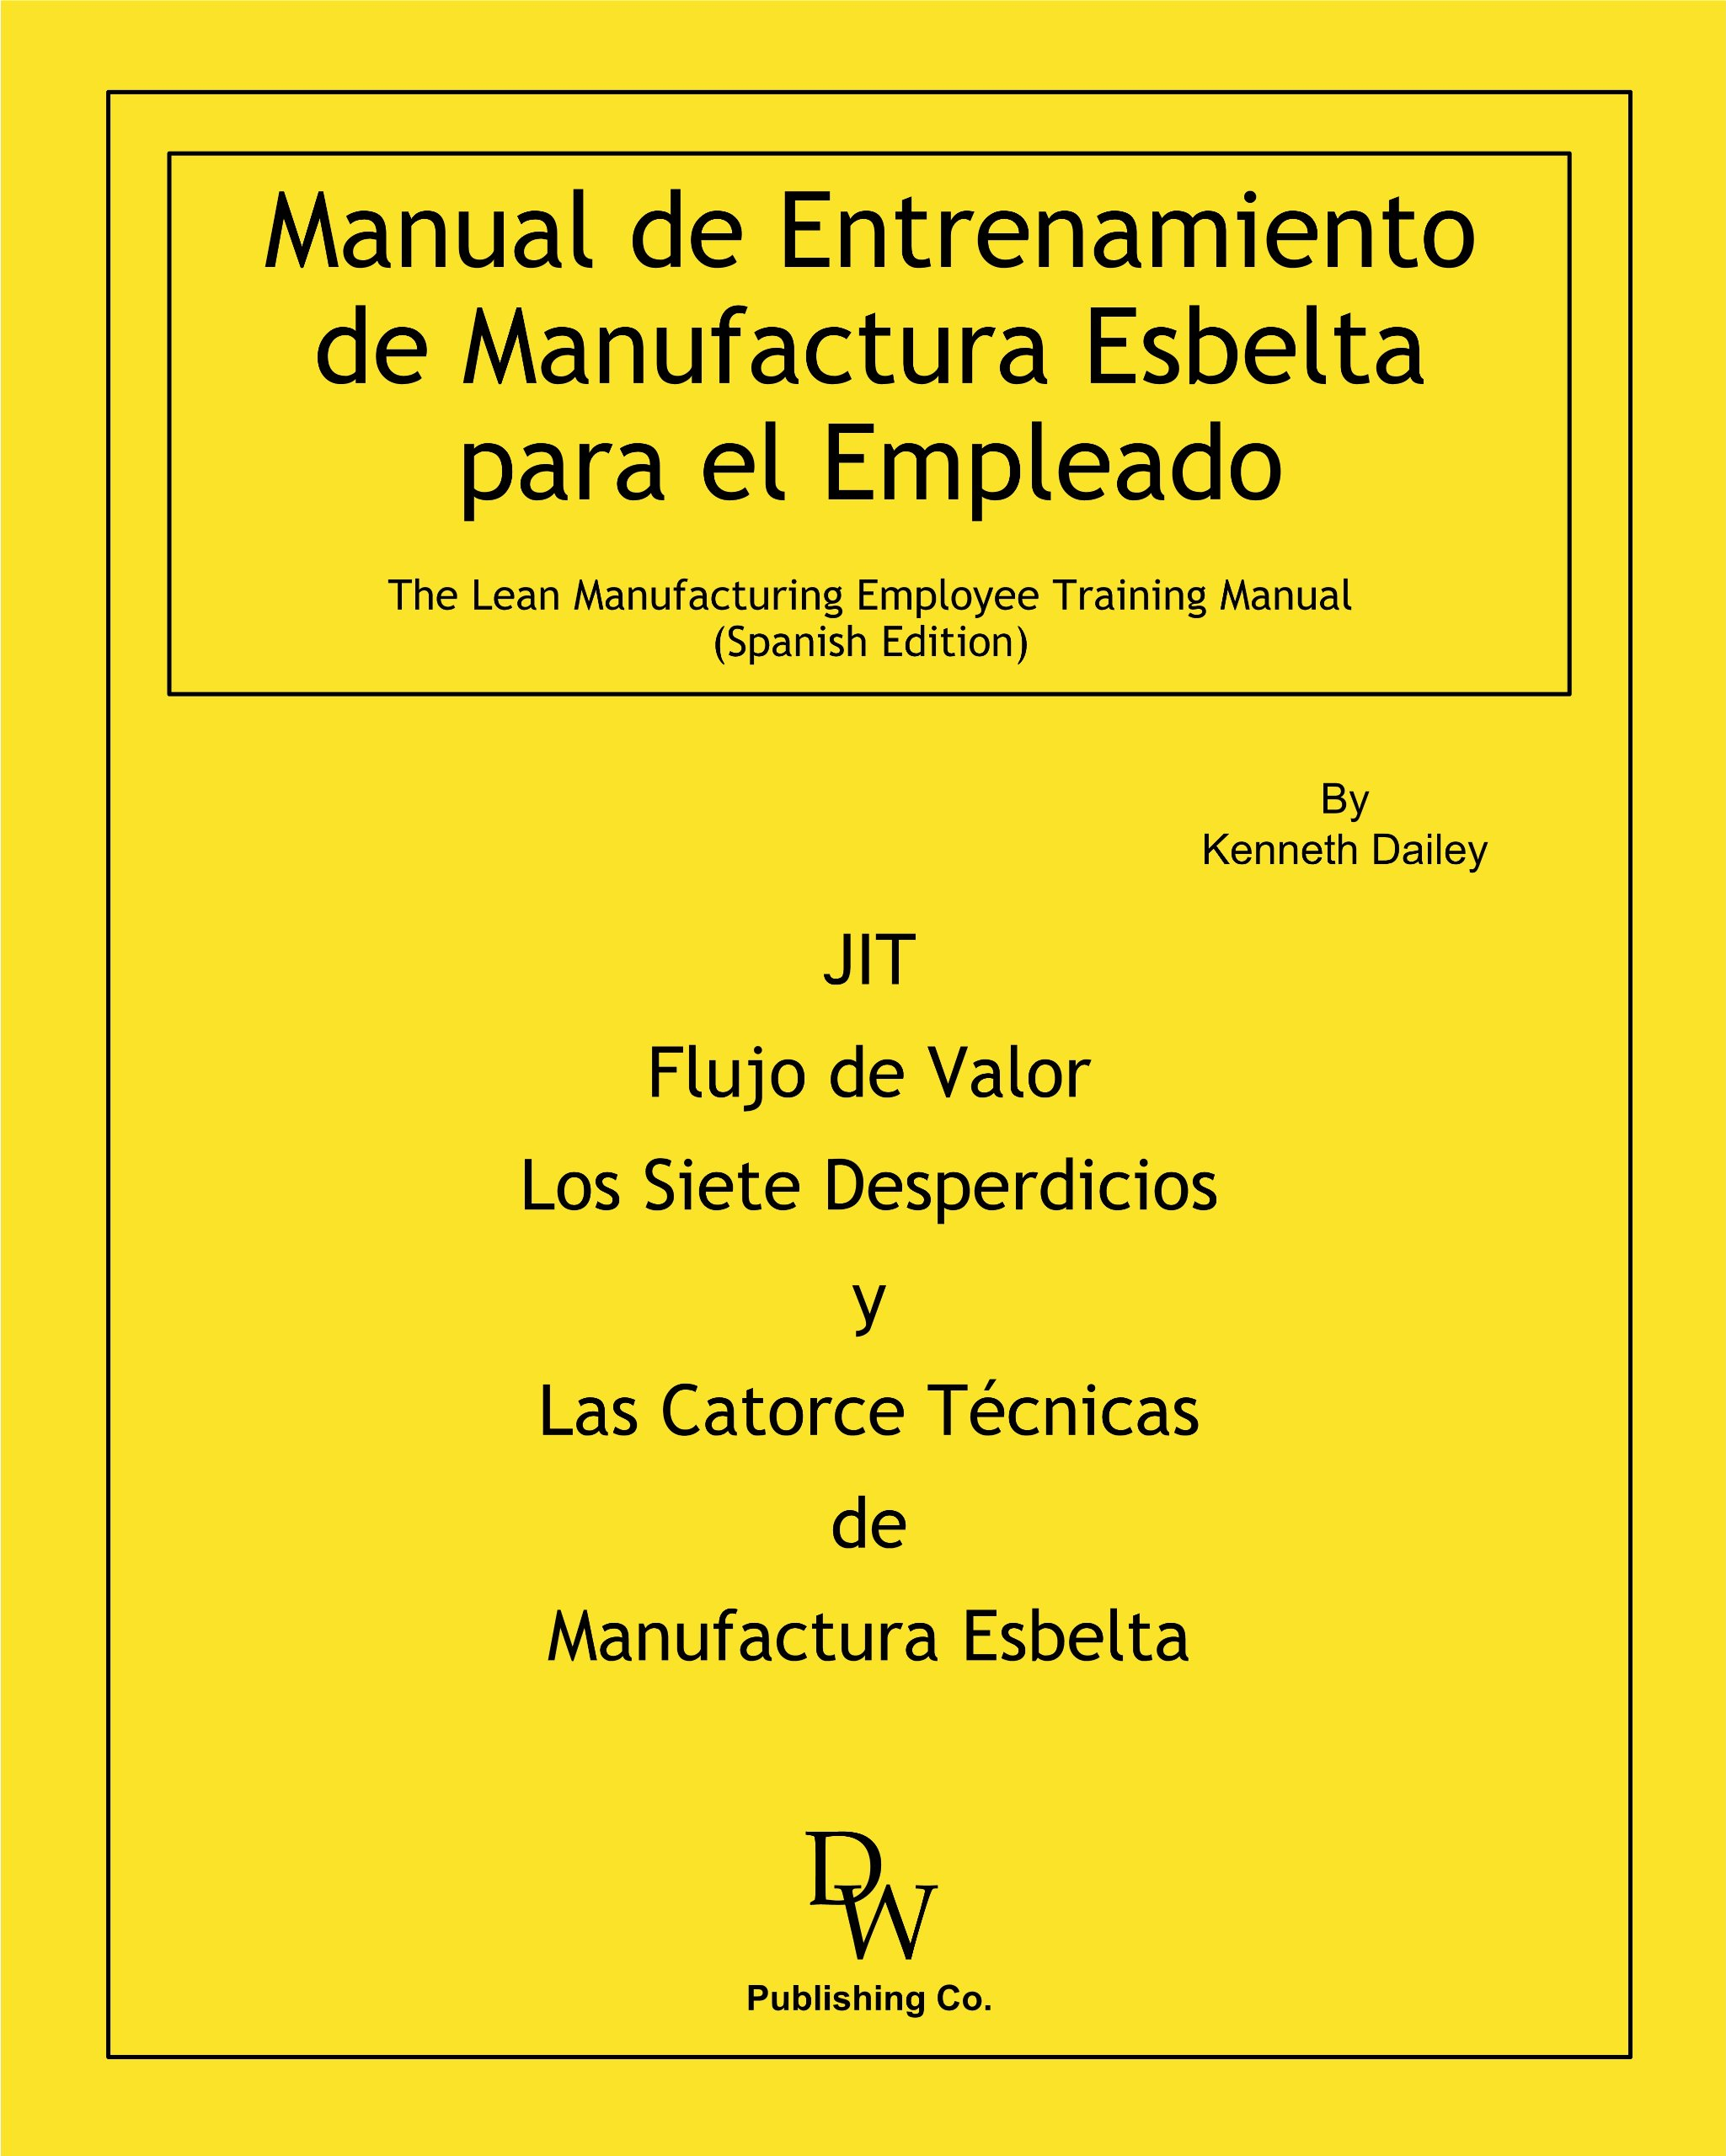 Download Manual de Entrenamiento de Manufactura Esbelta para el Empleado PDF